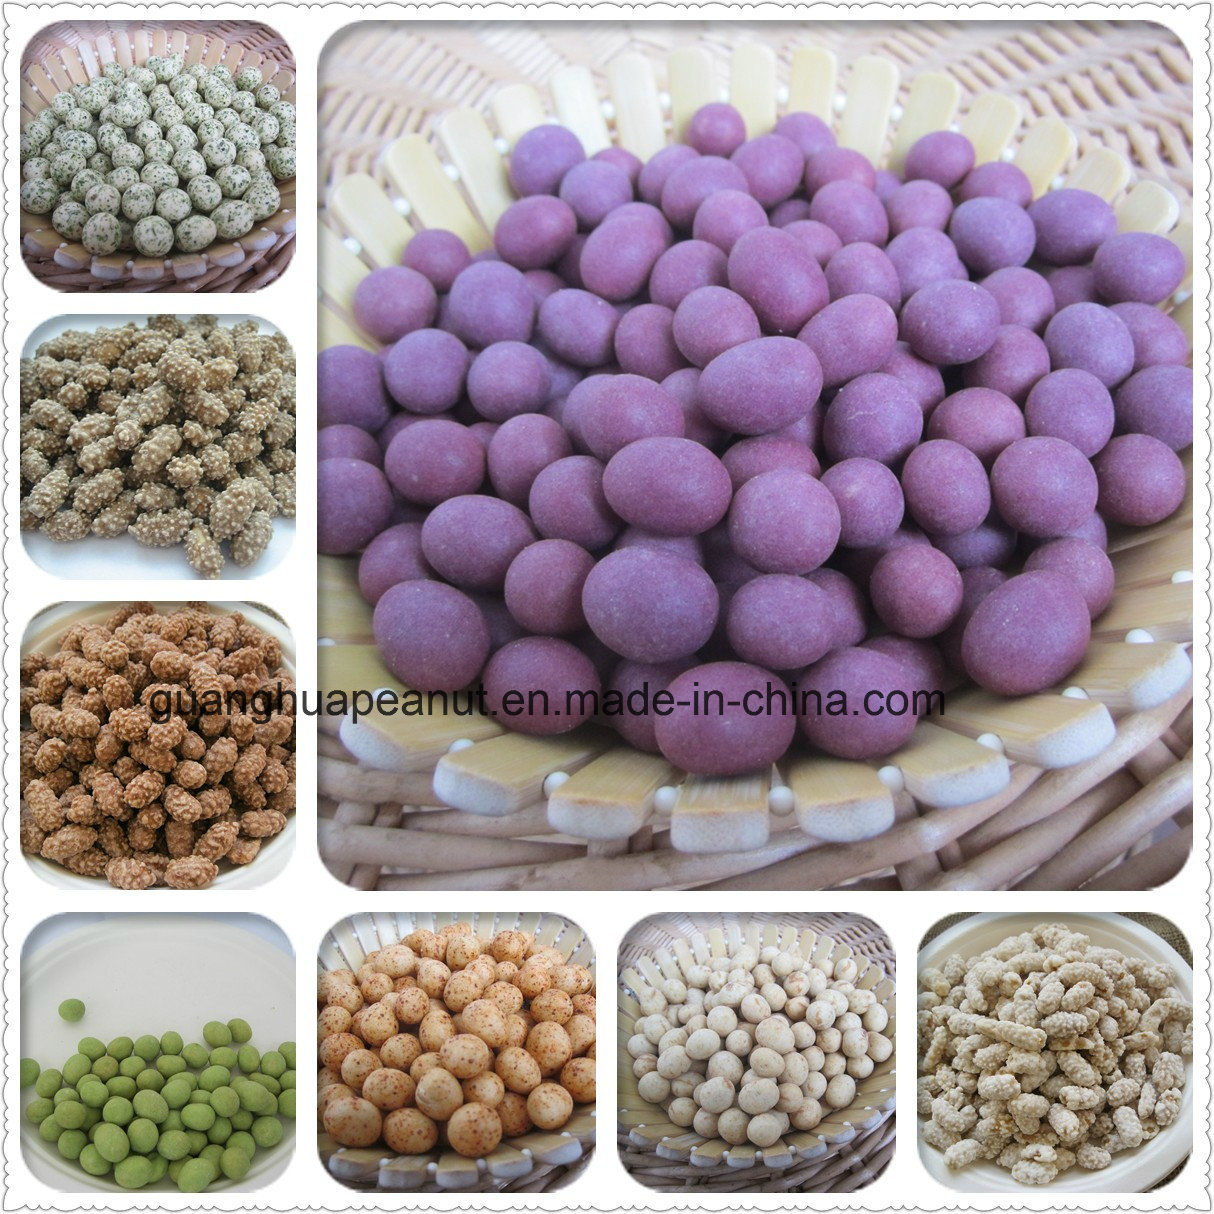 Hot Sale Coated Peanuts From China